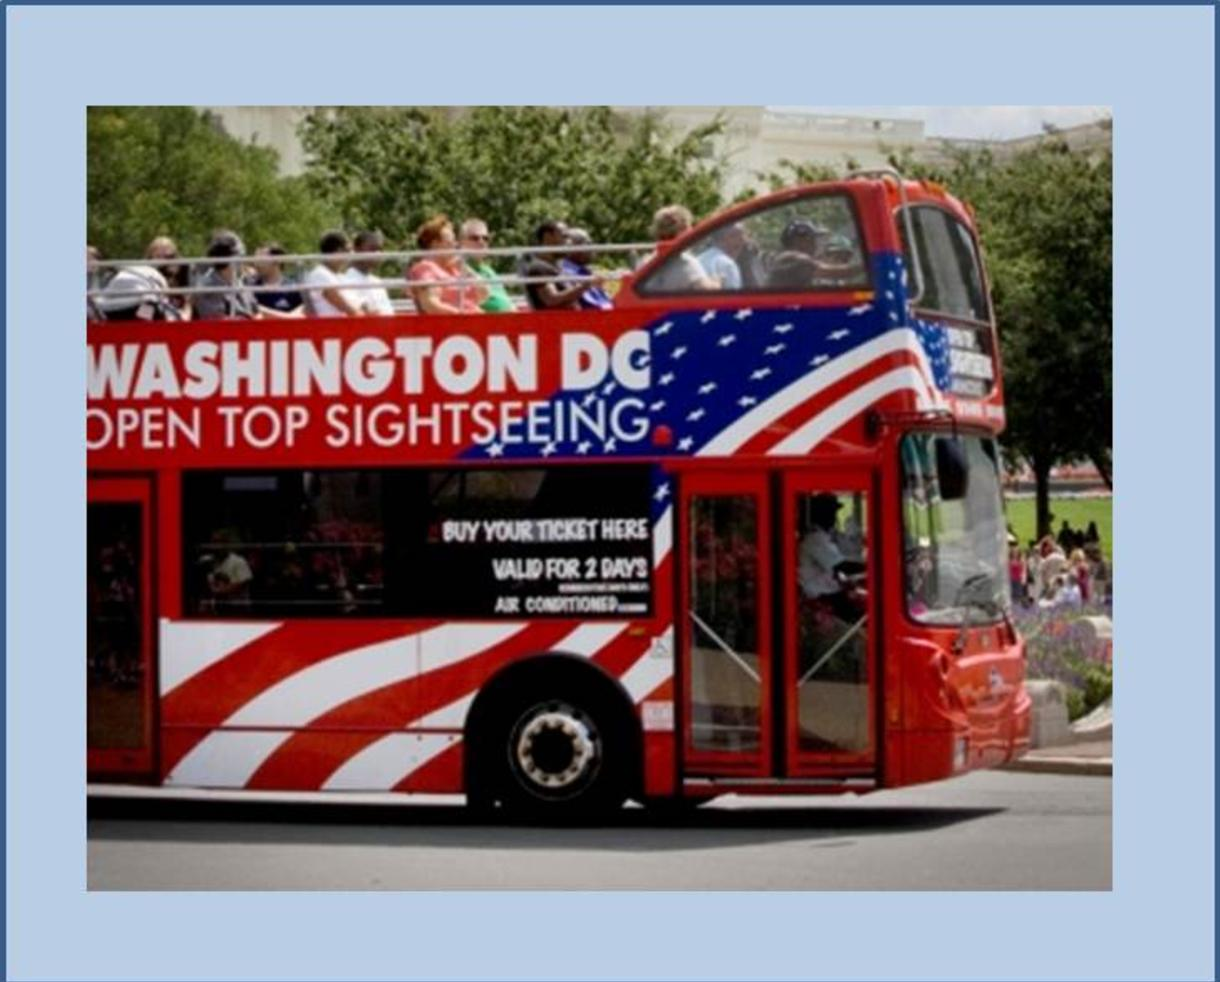 $65 for Family DC Double Decker Sightseeing Tour for 2 Adults + 2 Children AND Madame Tussauds! (68% Off)